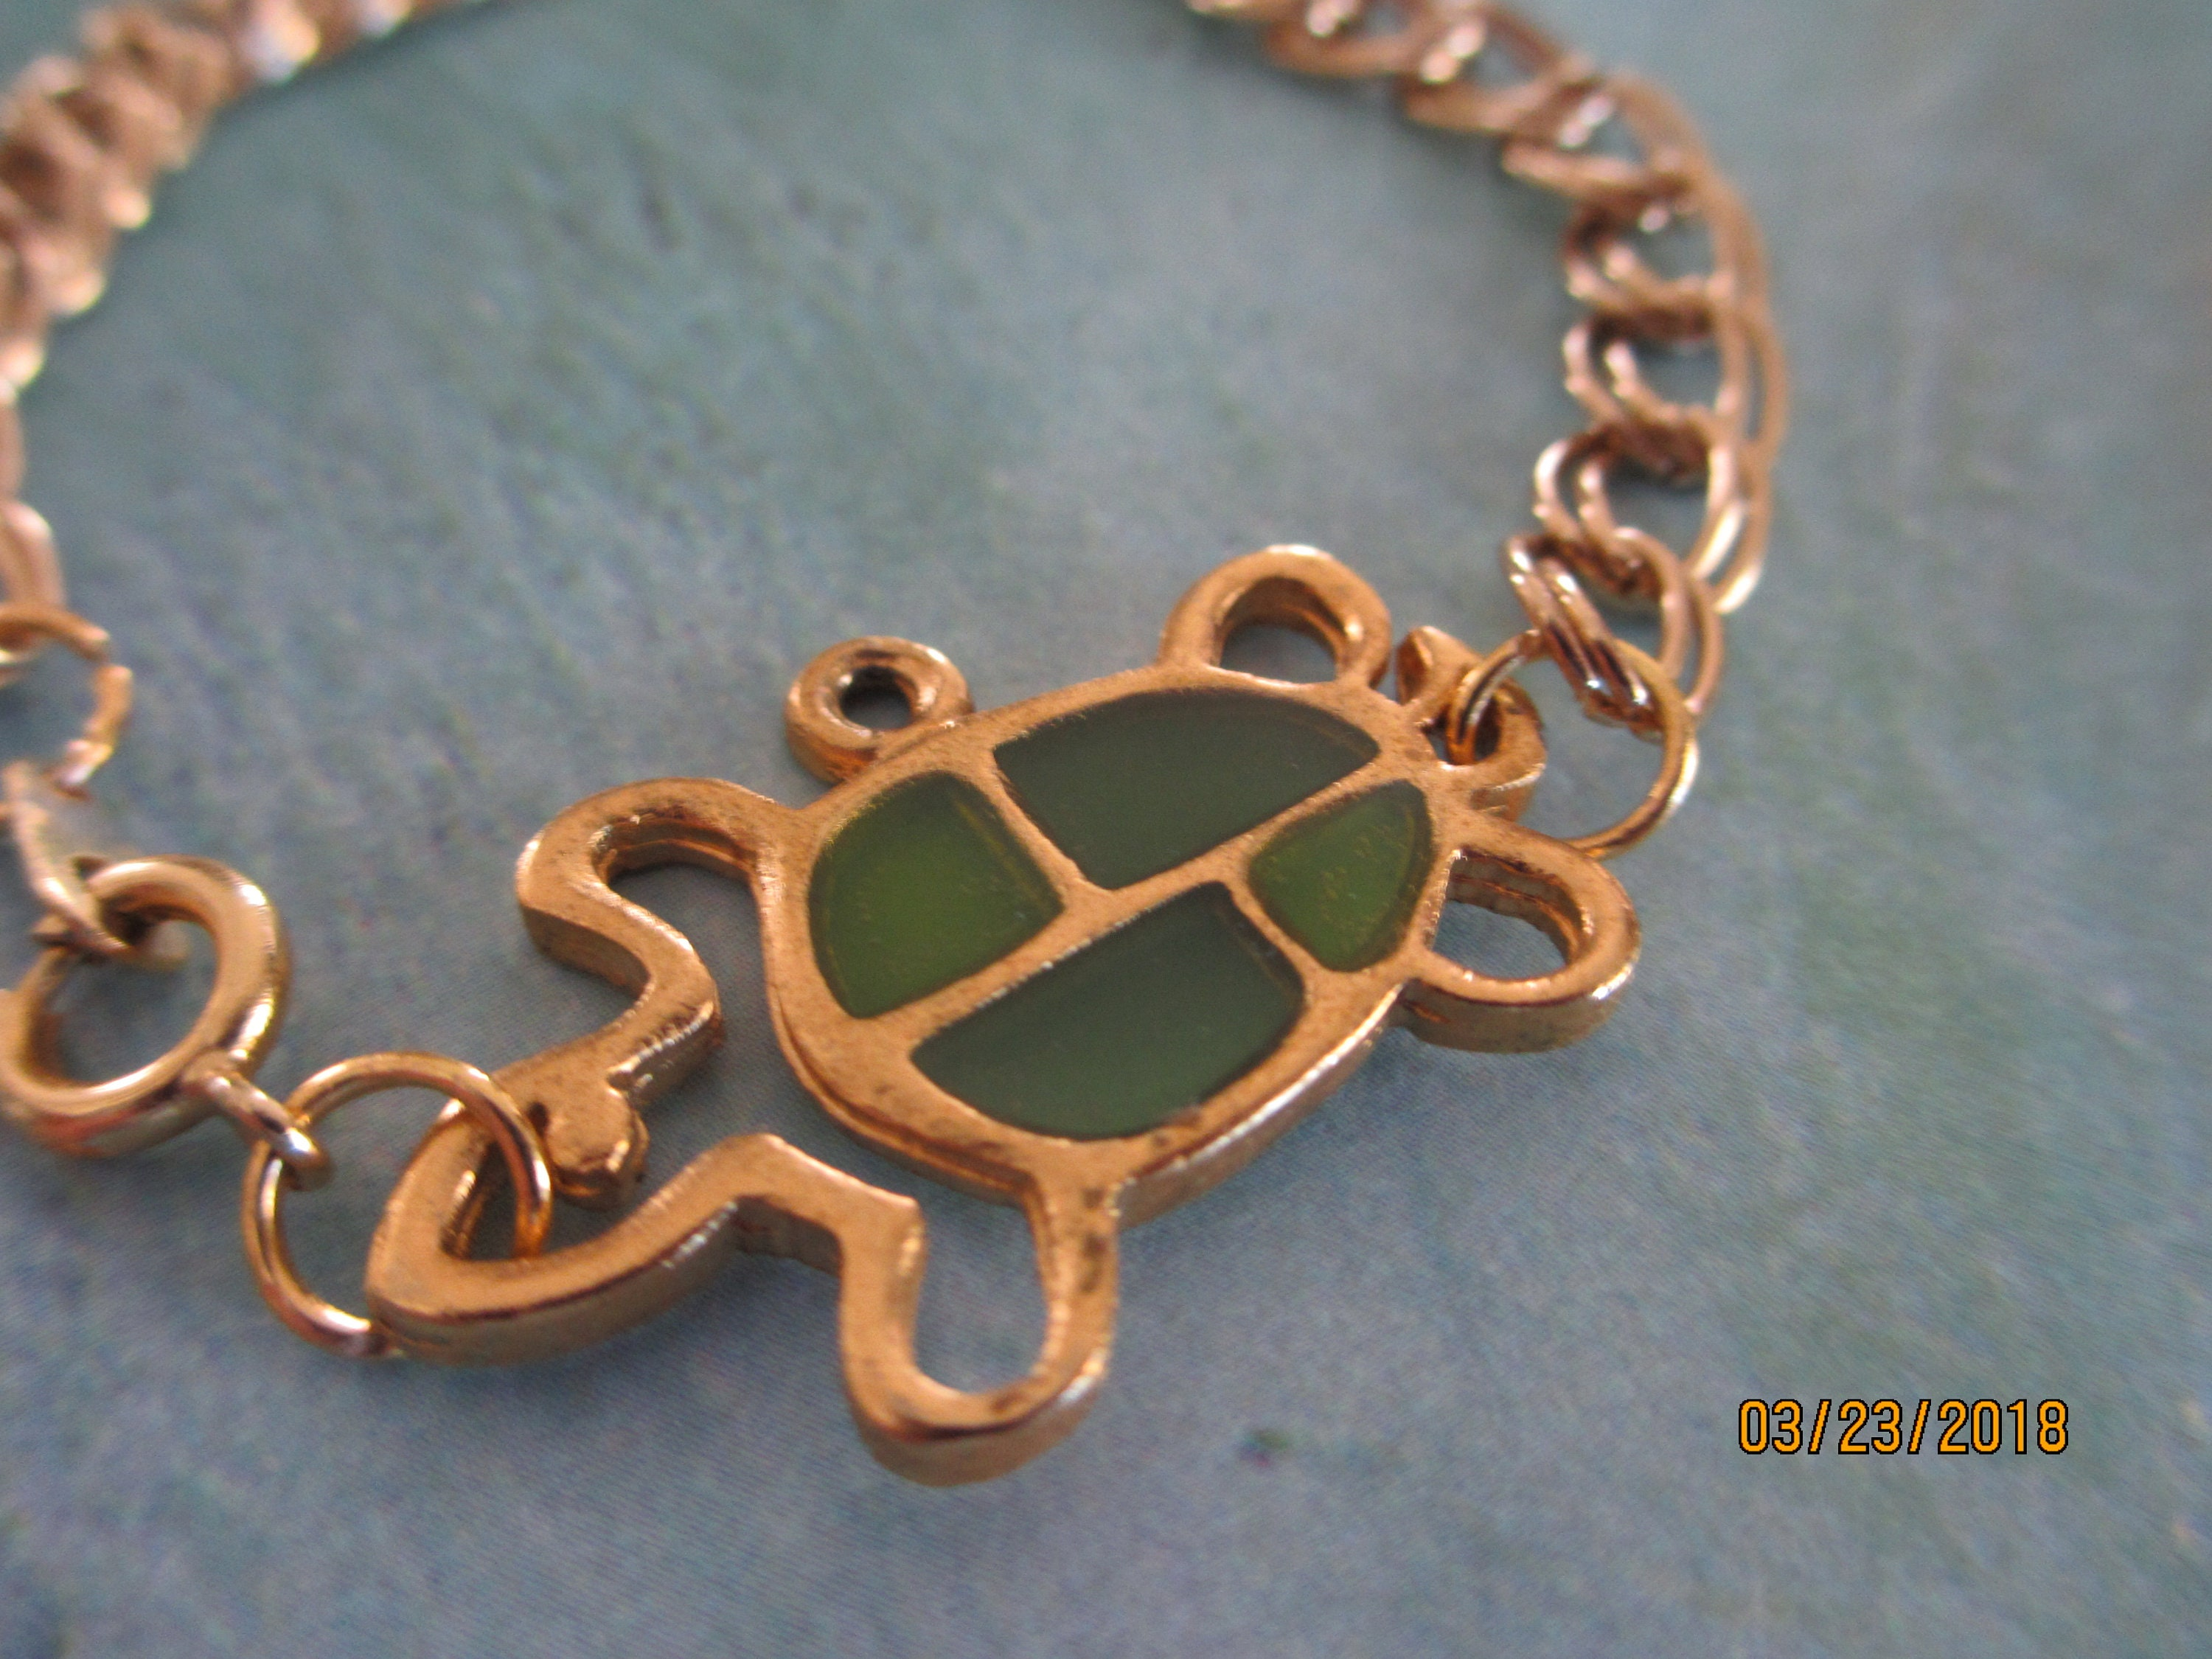 sea final february br turtle my vida worldturtleday buena products bracelet edition